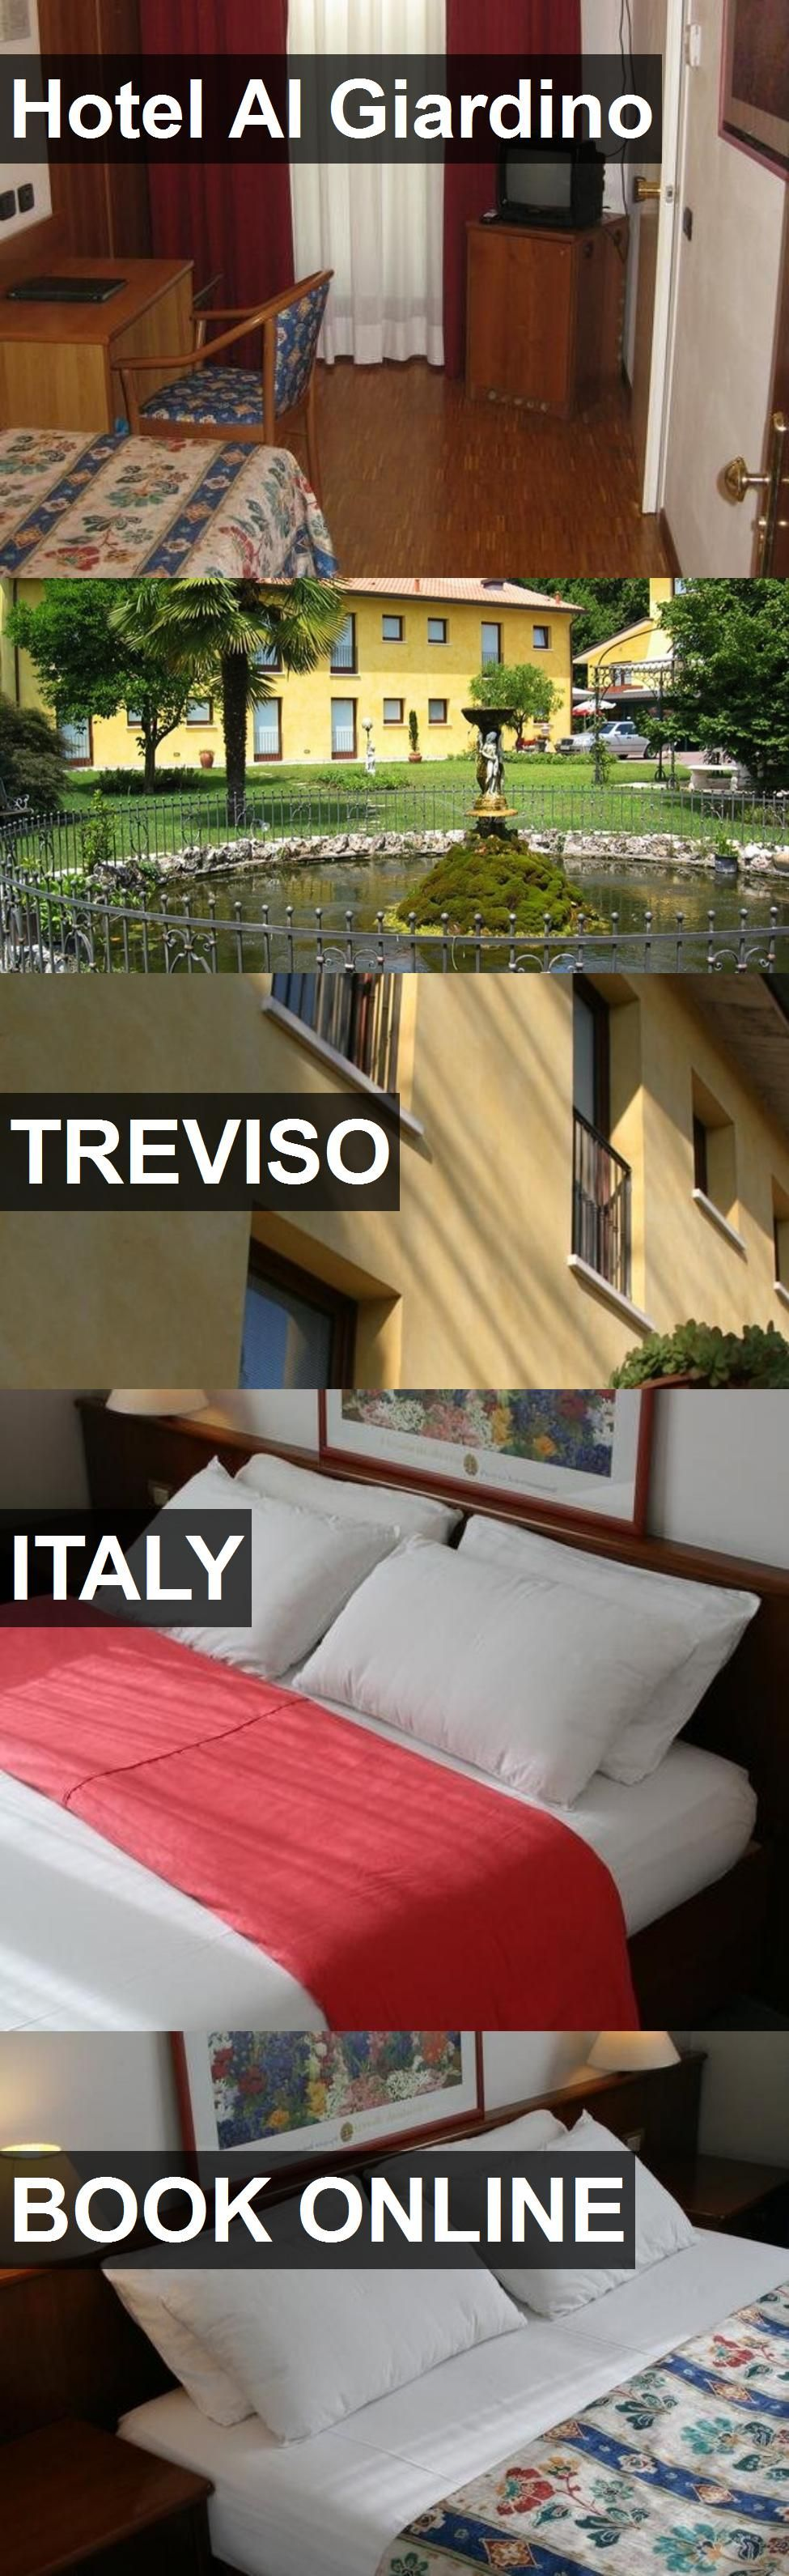 Giardino Prices Hotel Al Giardino In Treviso Italy For More Information Photos